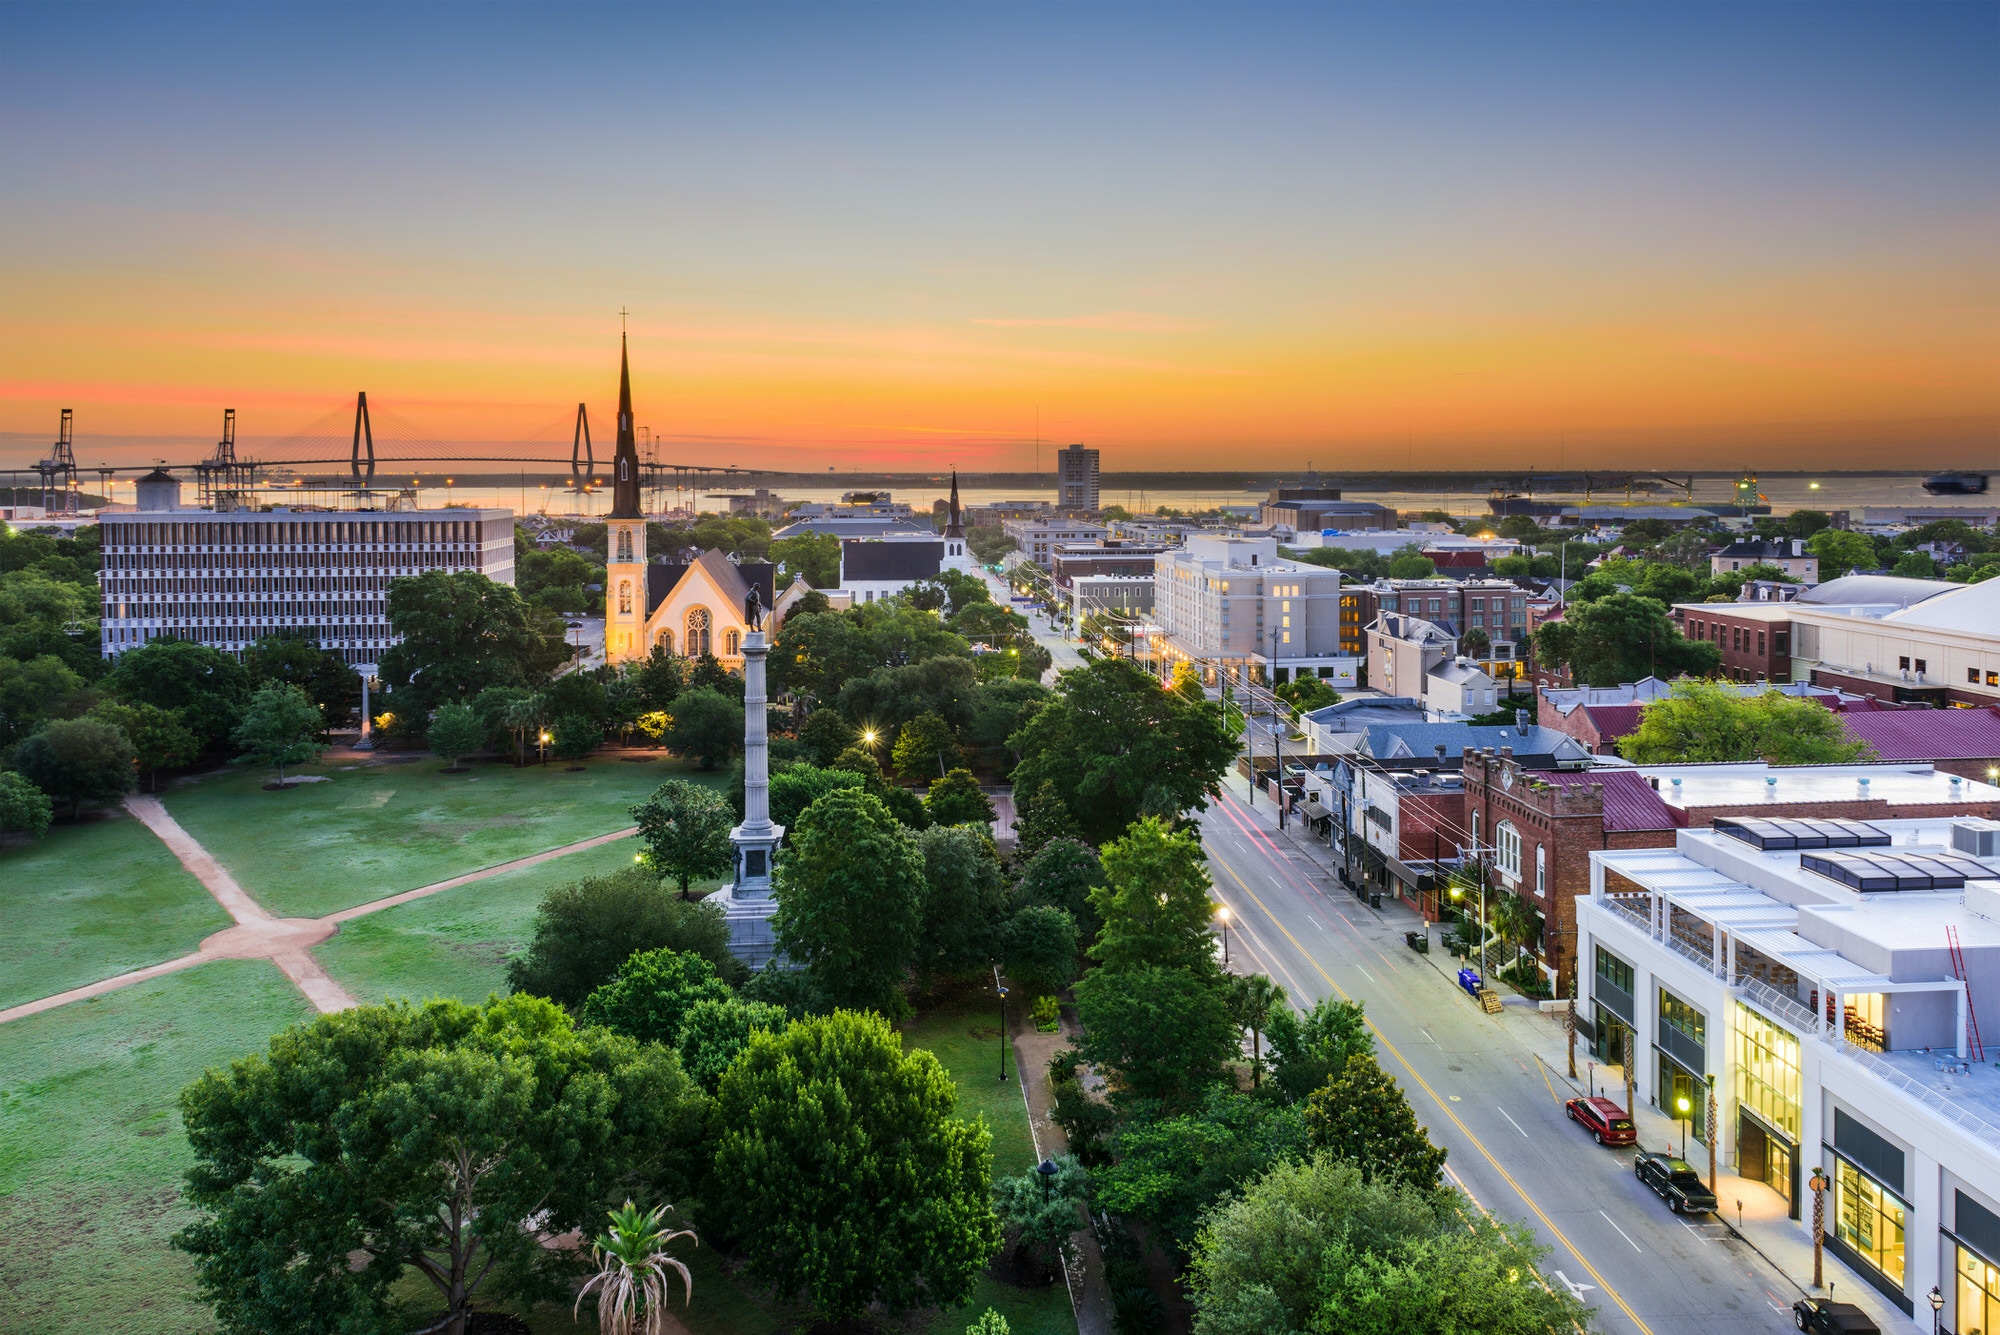 The skyline over Marion Square, Charleston during sunset © Sean Pavone Photo / Getty Images